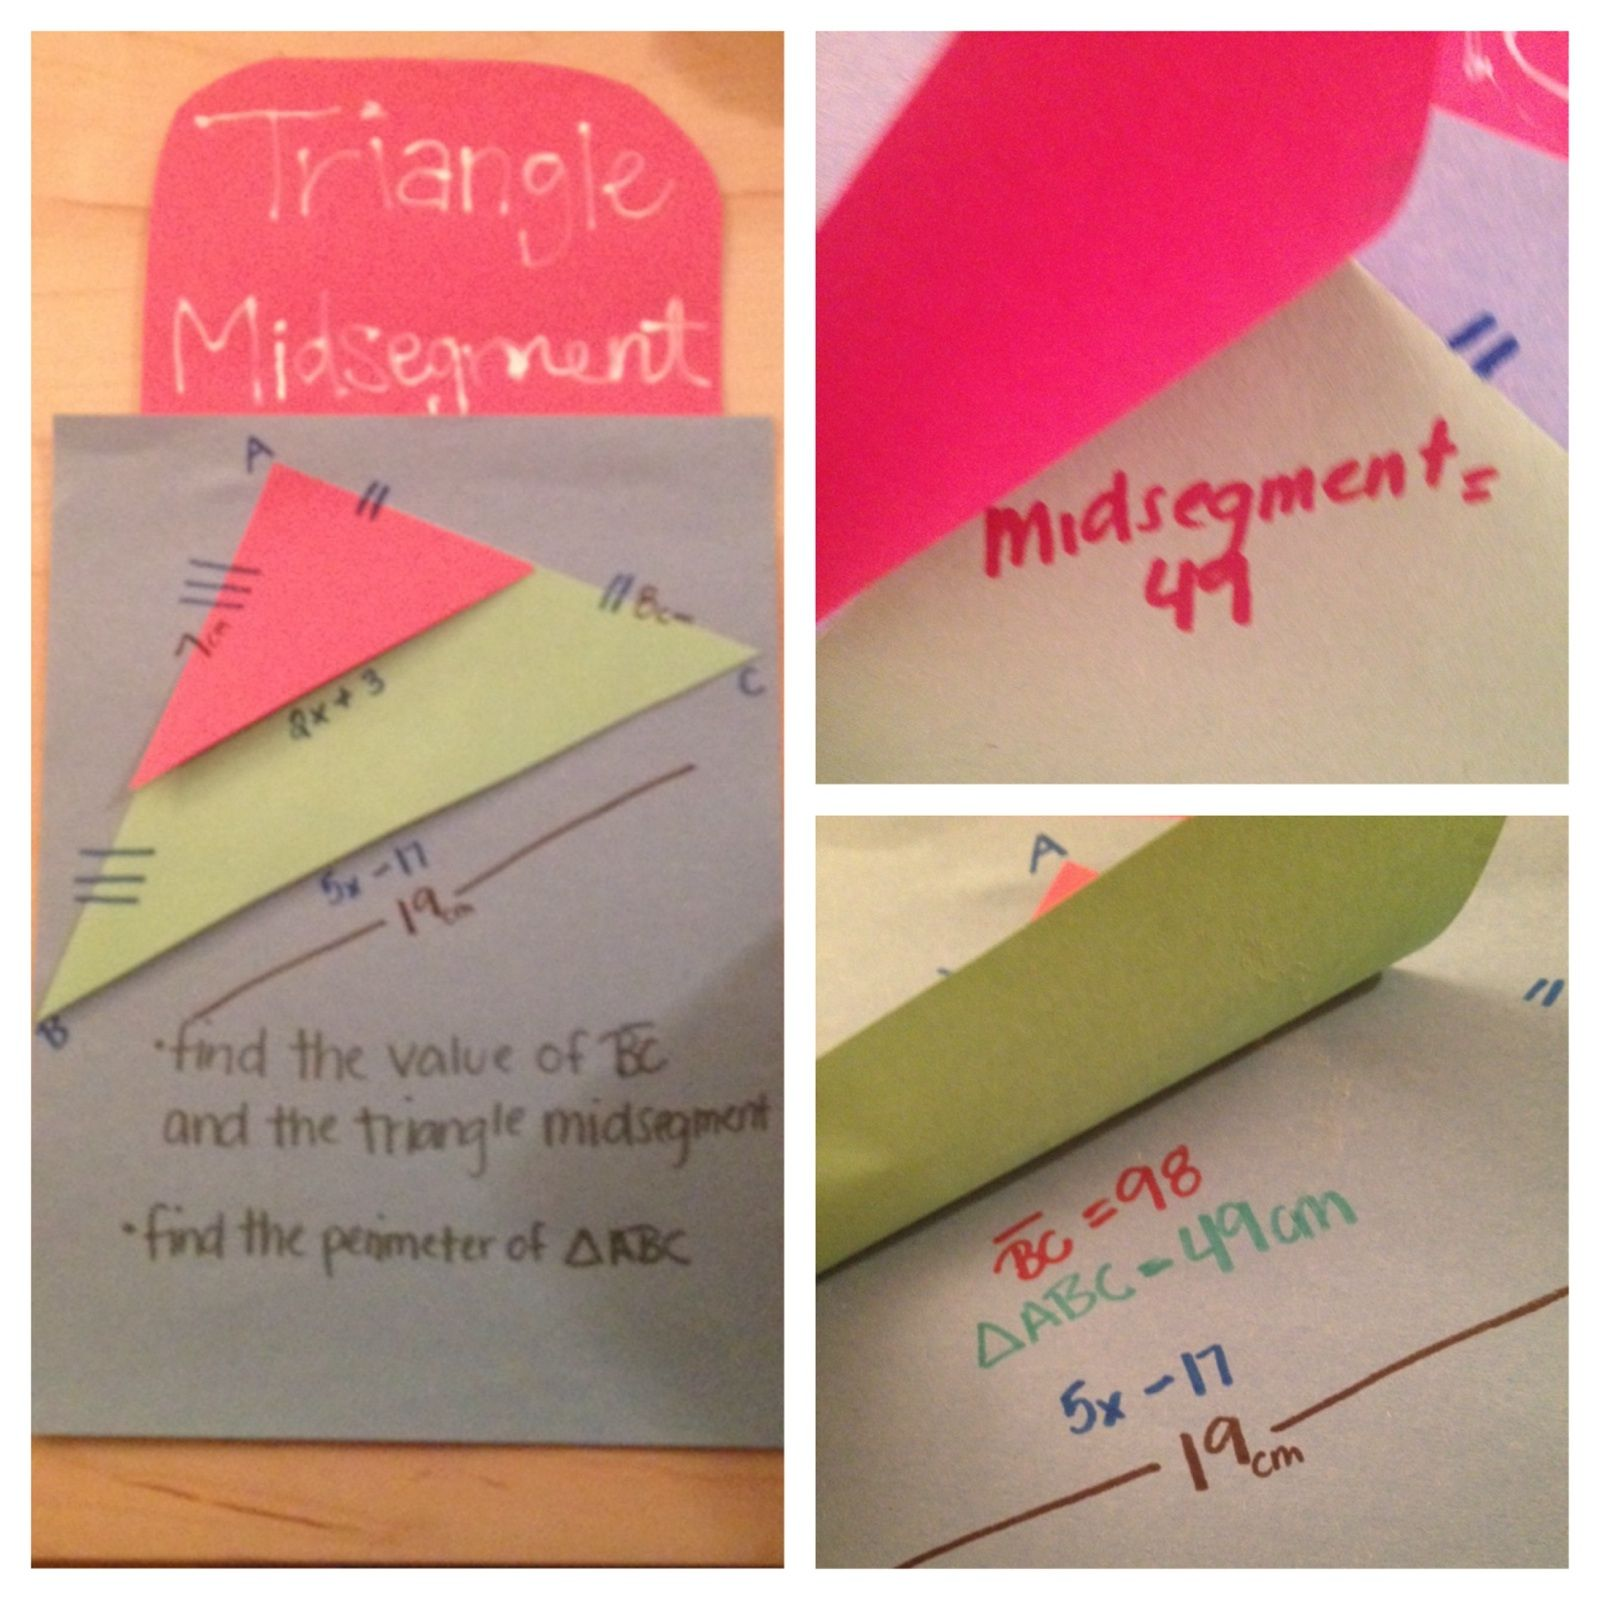 Triangle Midsegment Pop Up! Find The Midsegment Length, Length Of Bc, And  The